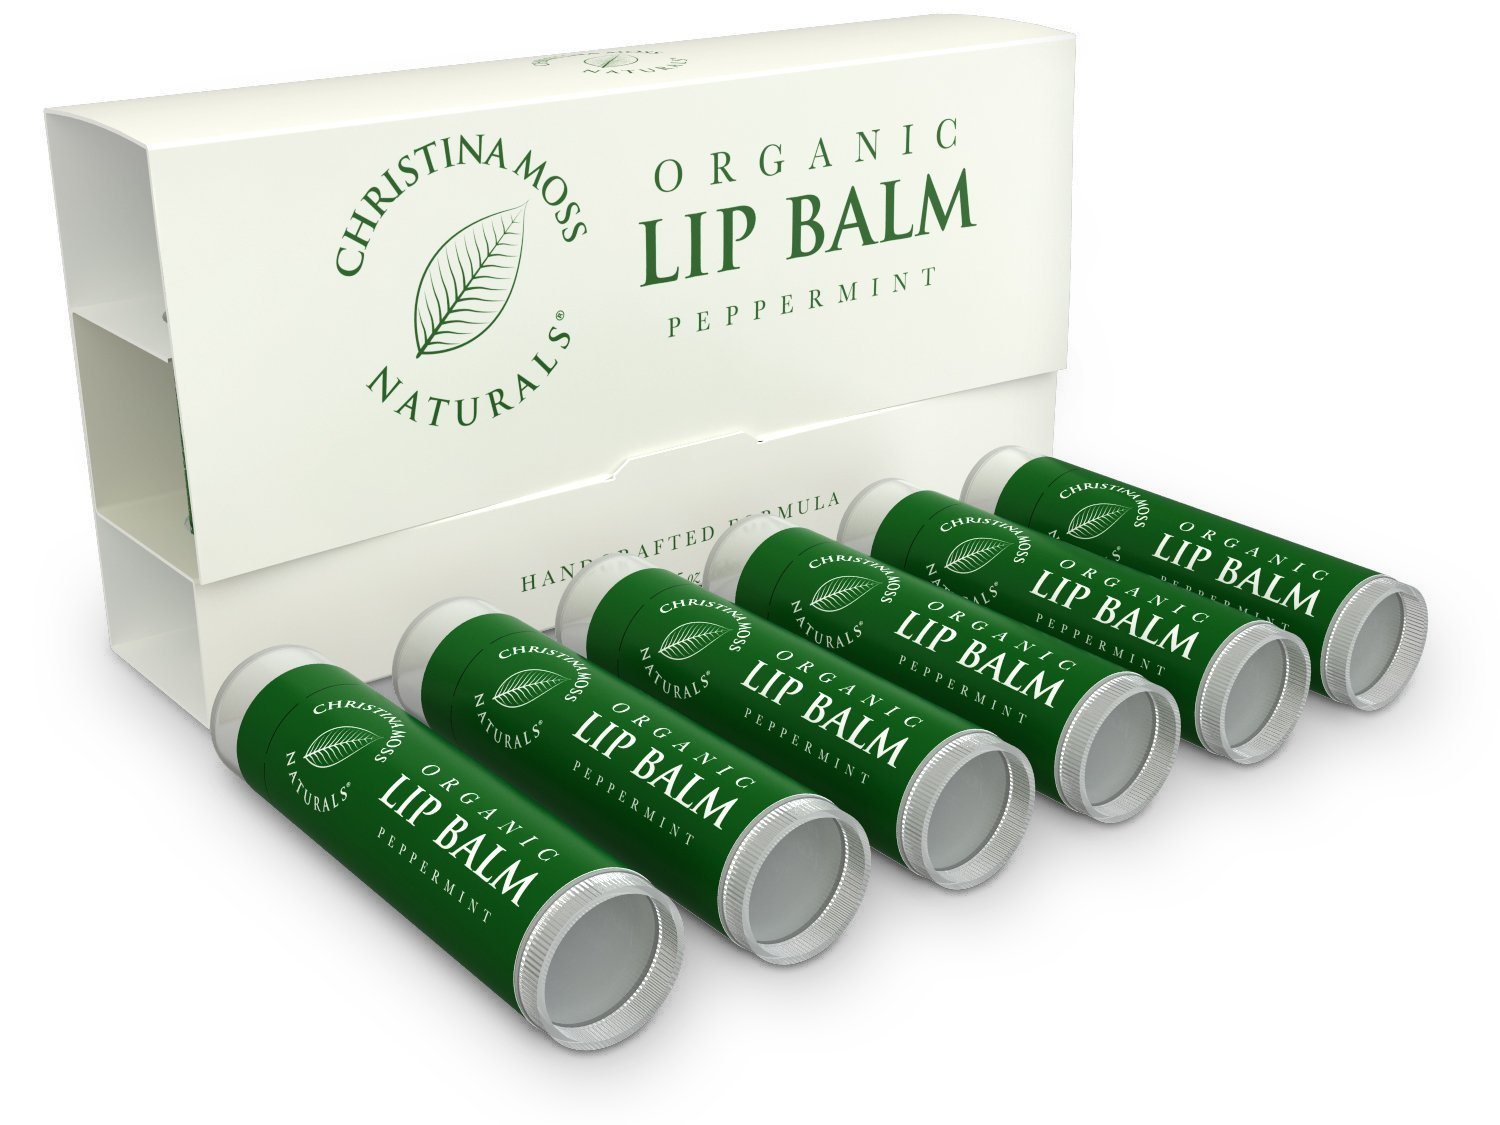 Lip Balm - Lip Care Therapy - Lip Butter - Made with Organic & Natural Ingredients - Repair & Condition Dry, Chapped, Cracked Lips - 6 Pack, Peppermint - Christina Moss Naturals by Christina Moss Naturals